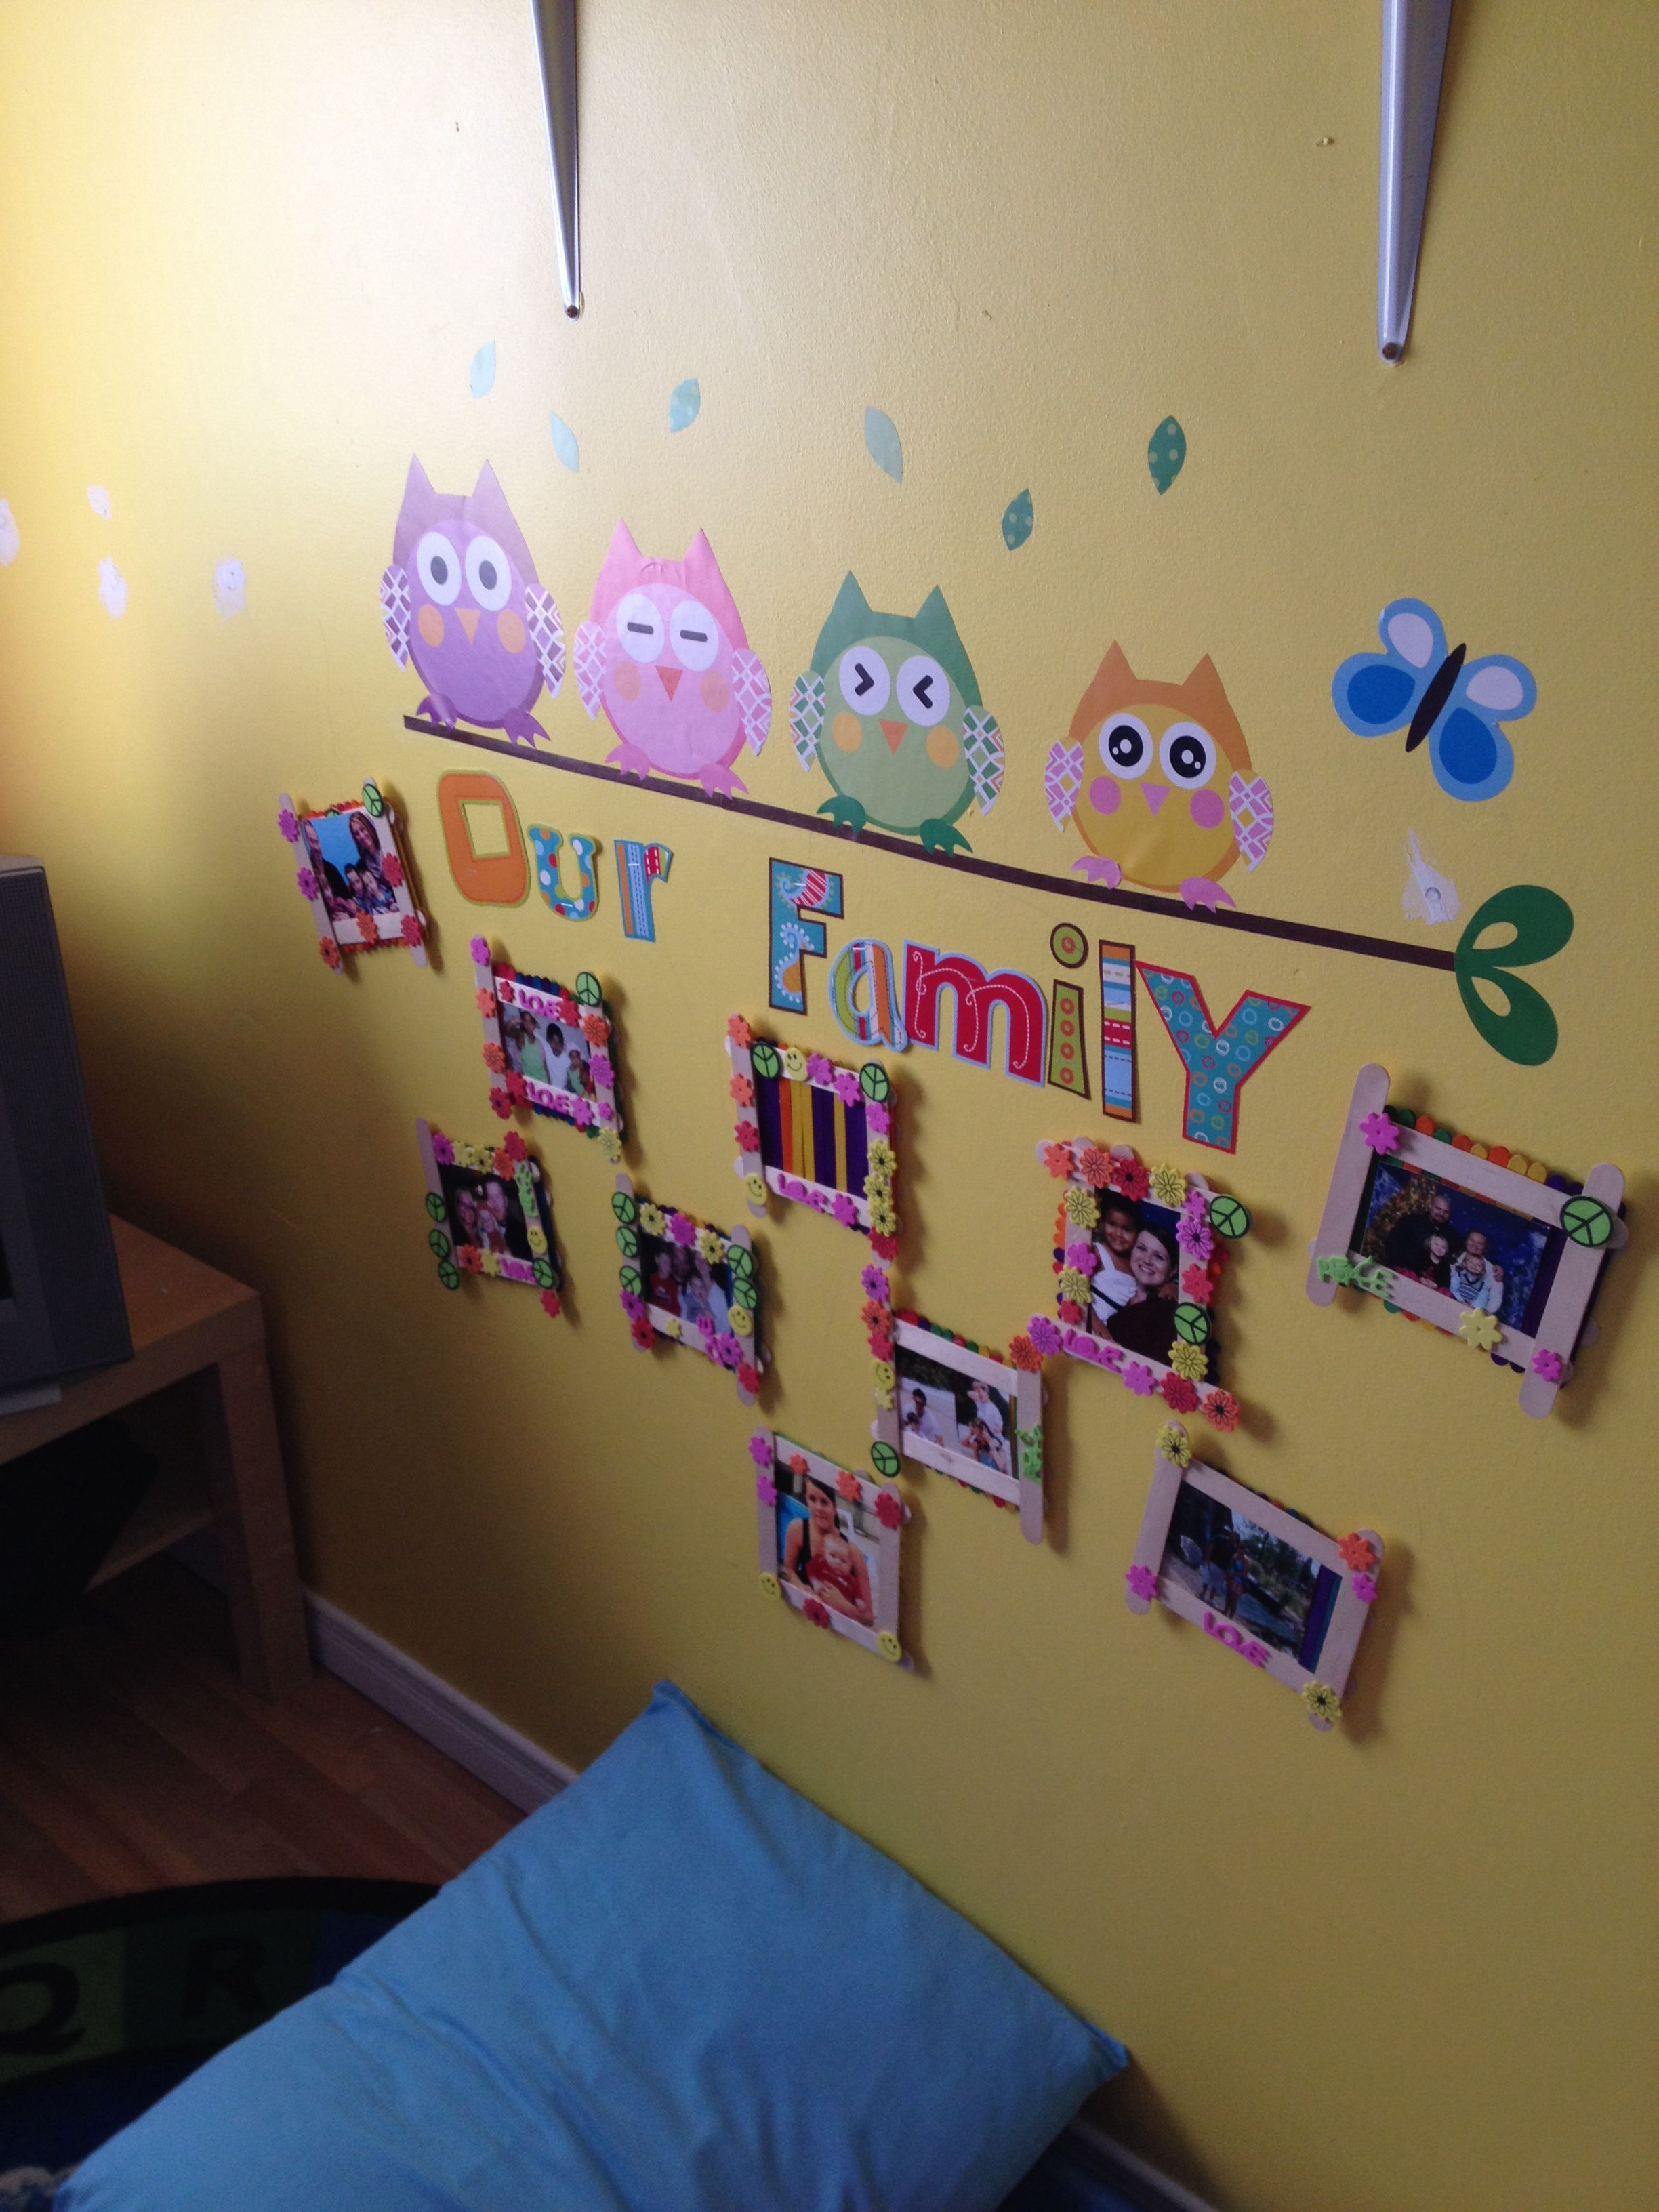 Family Photos Wall At Daycare So The Kids Can See Their Family All